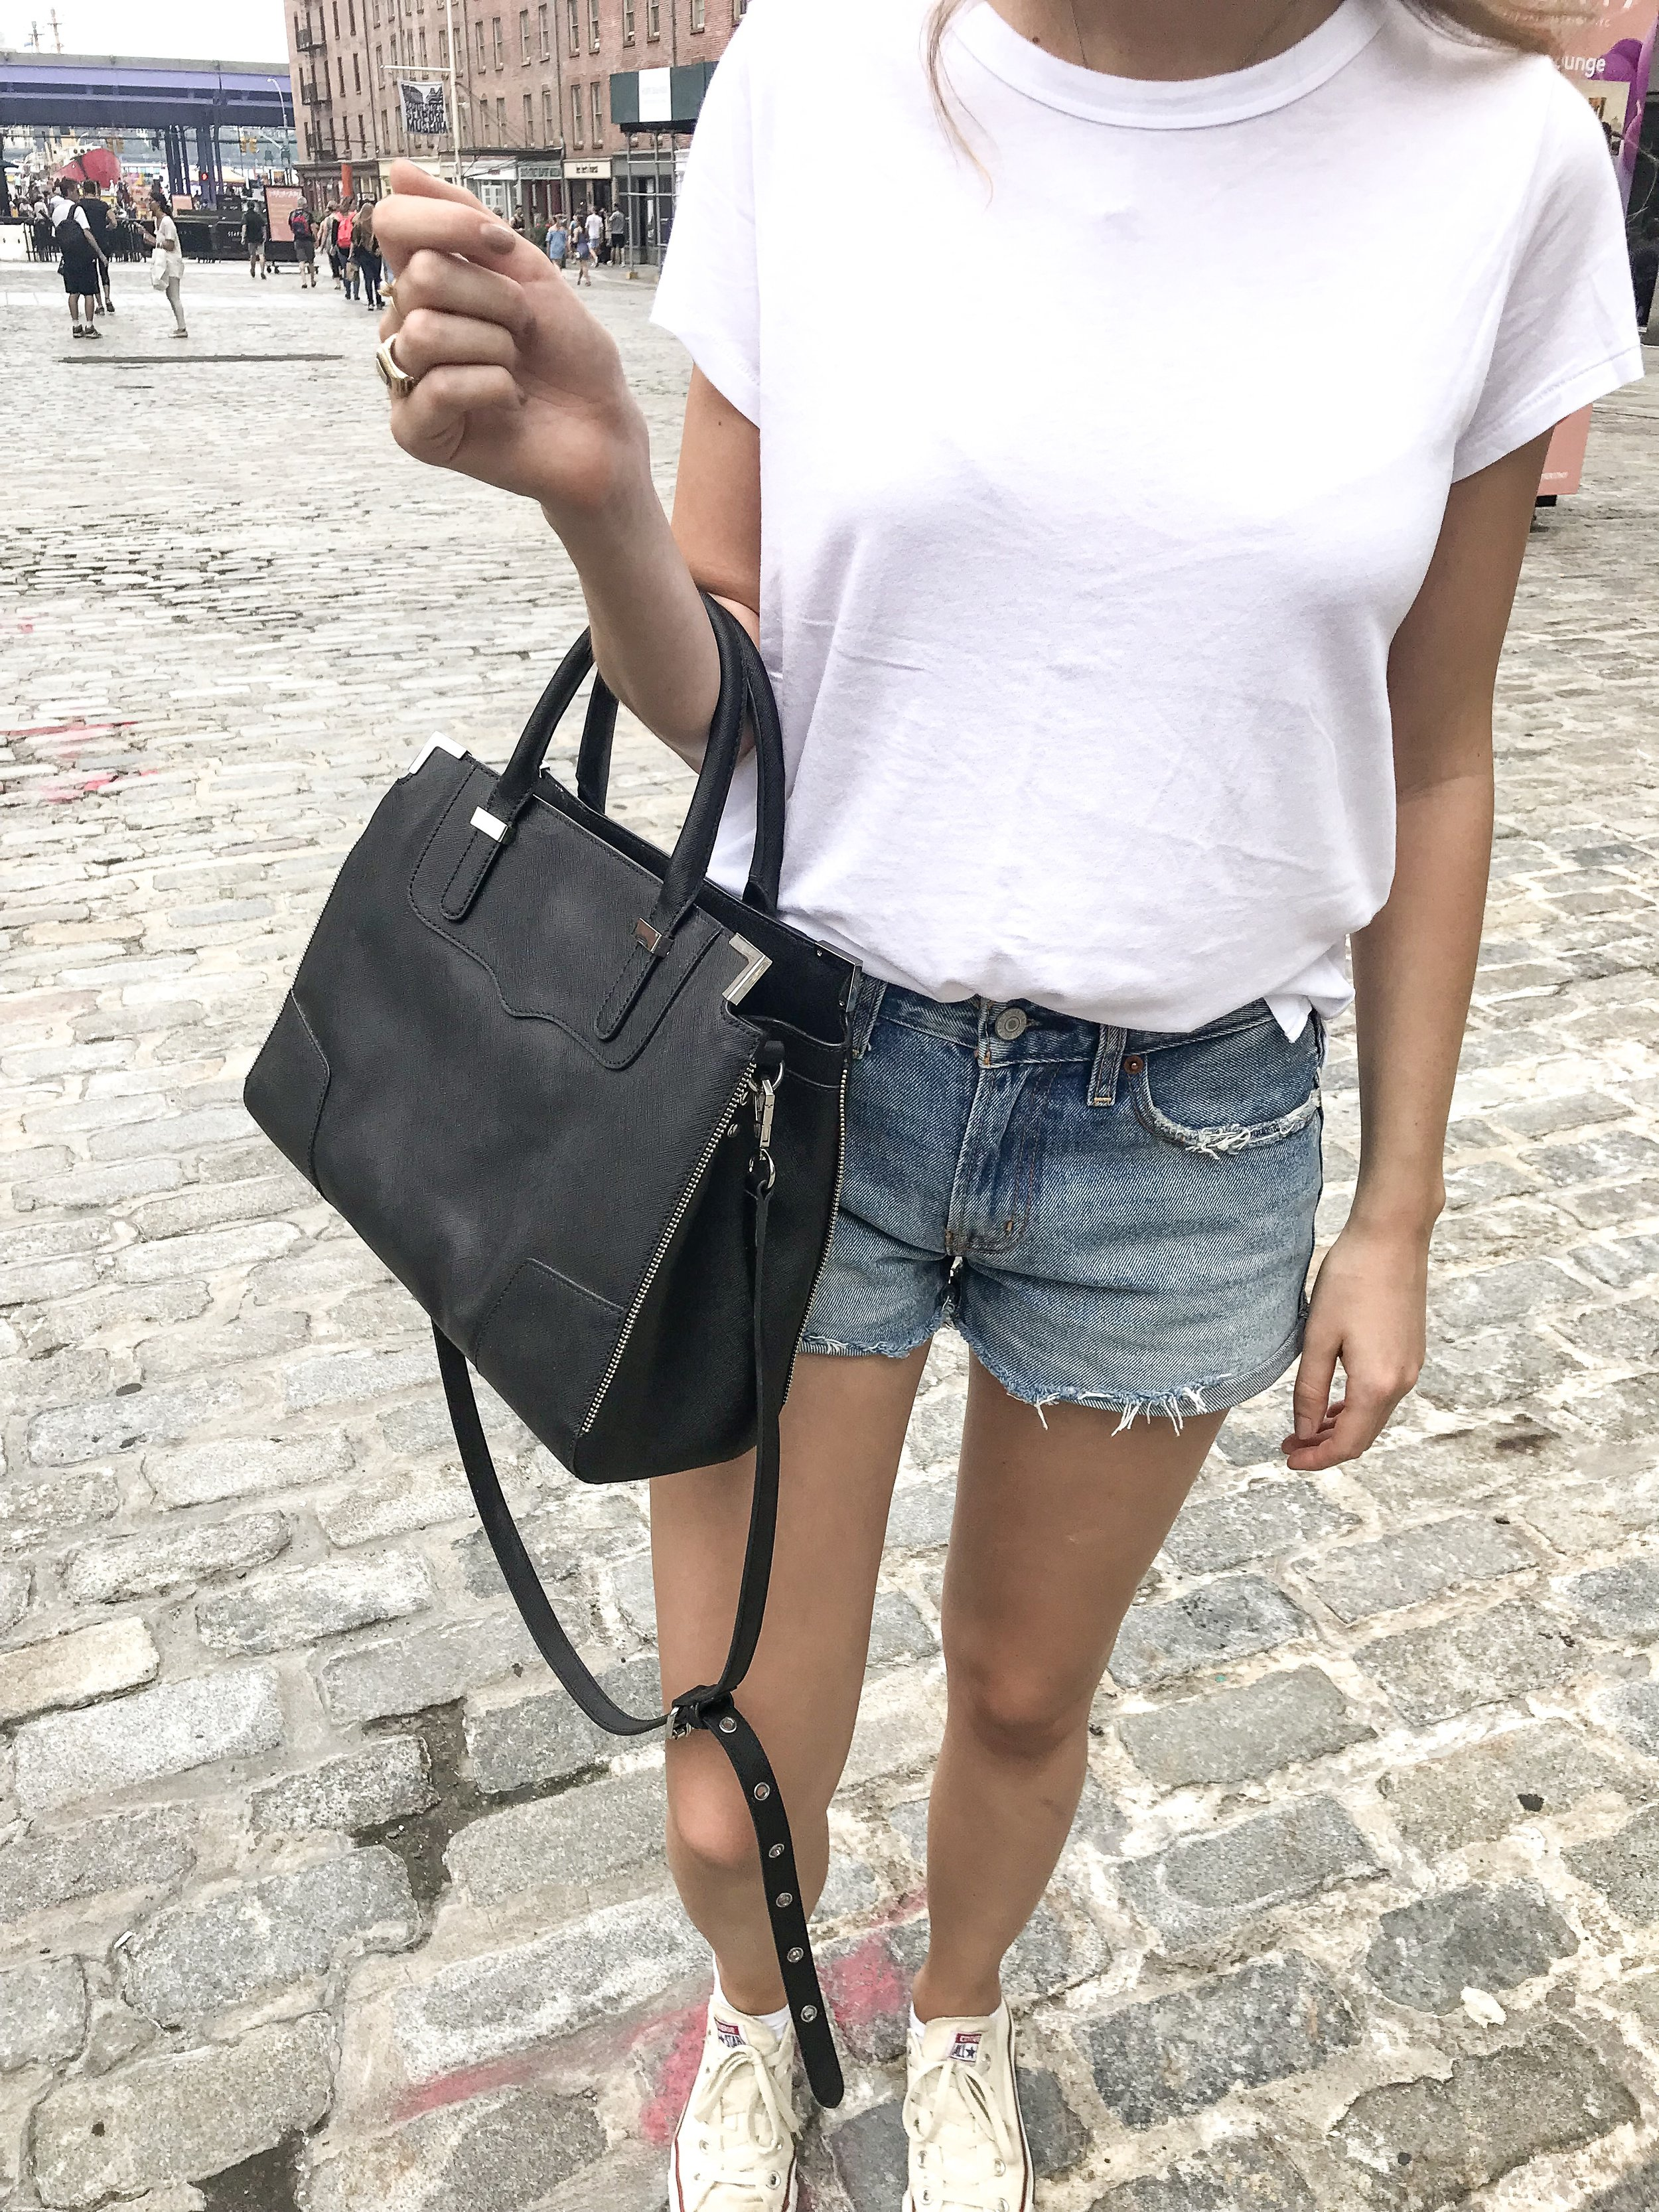 Jeans and t shirt women's fashion